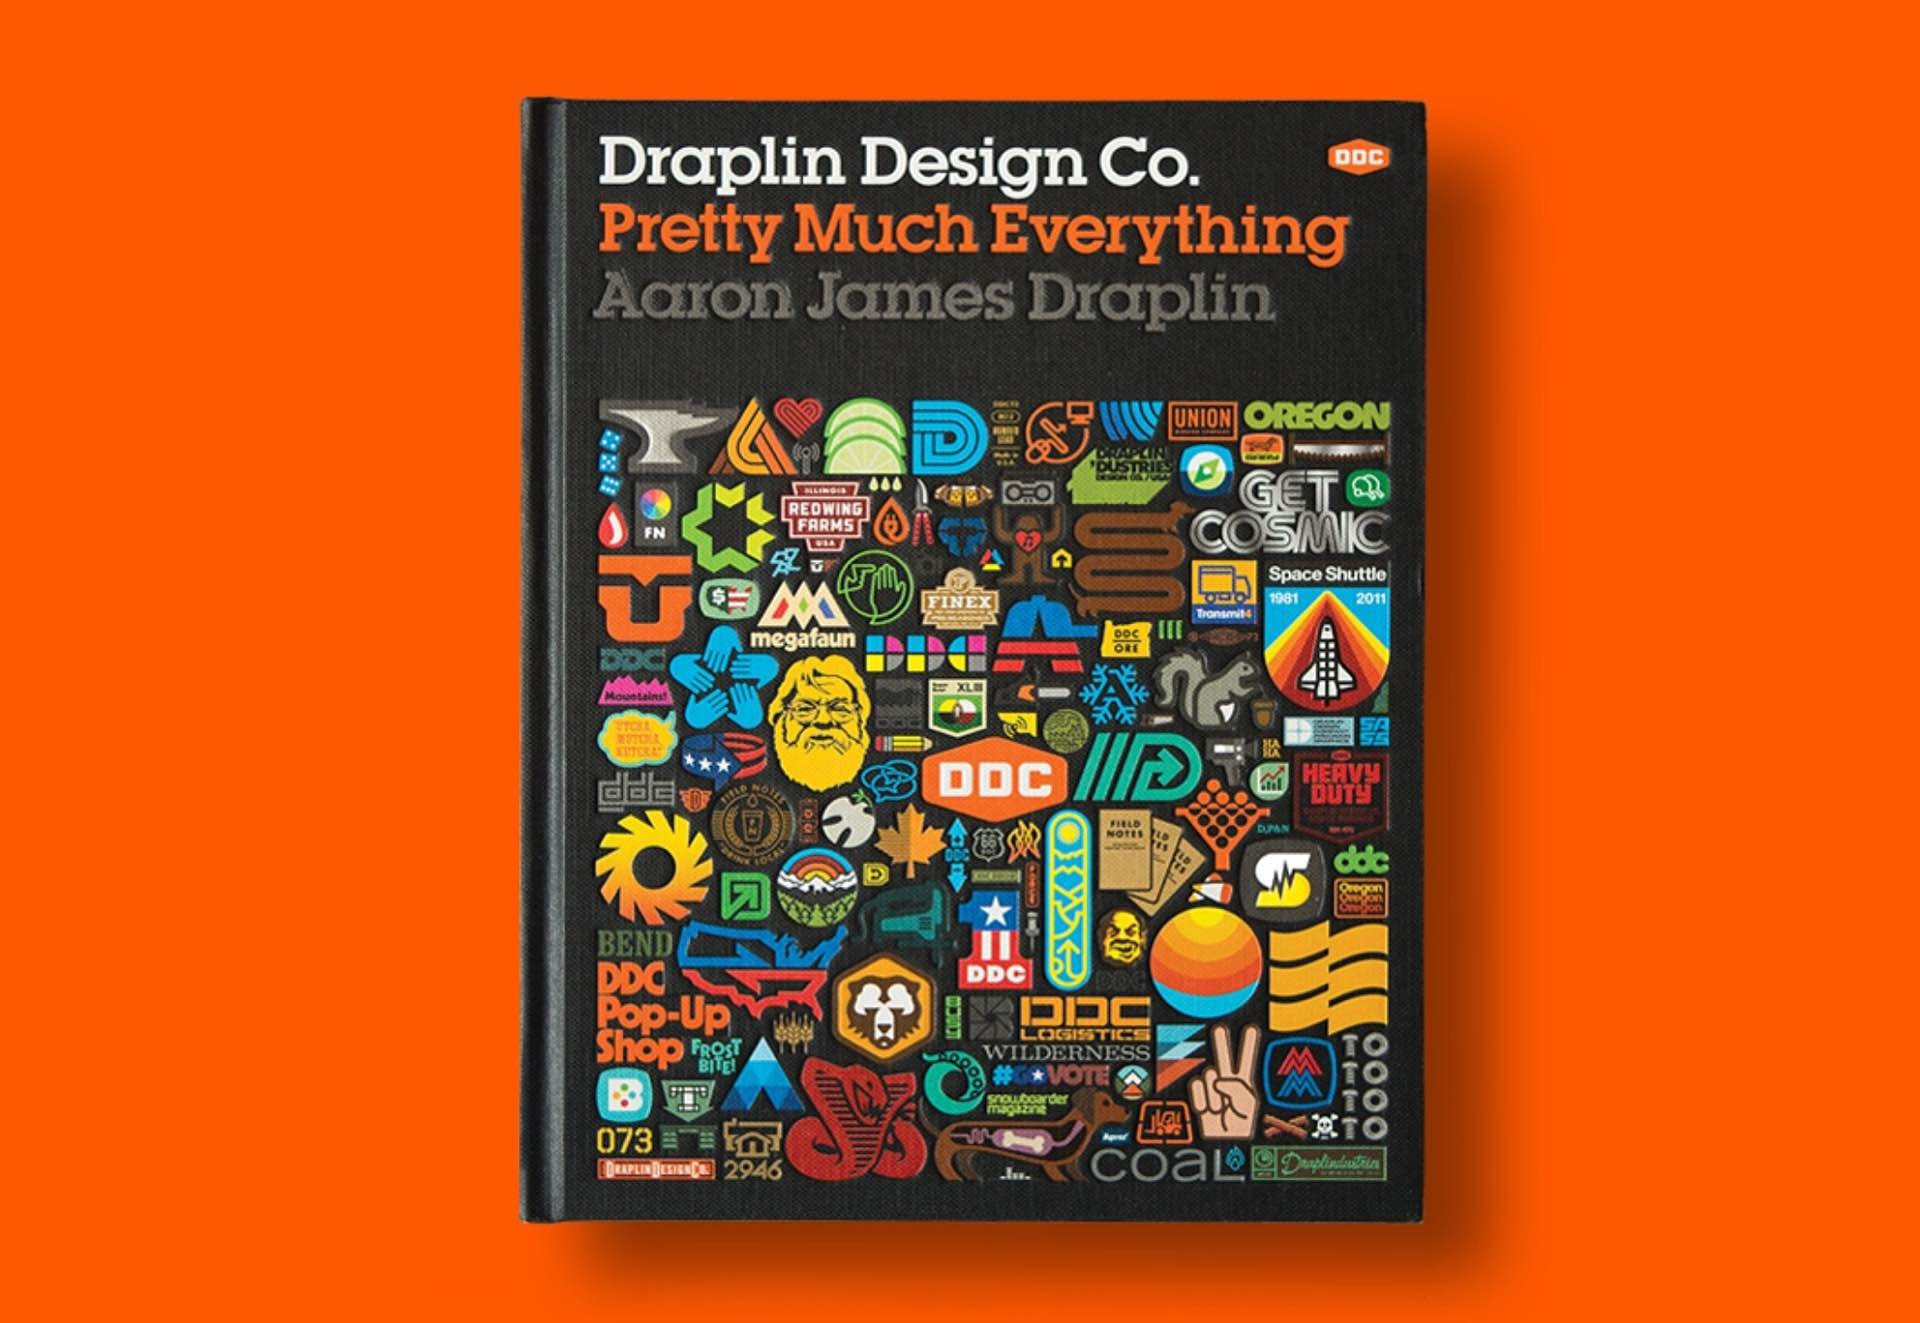 Pretty Much Everything by Aaron Draplin.